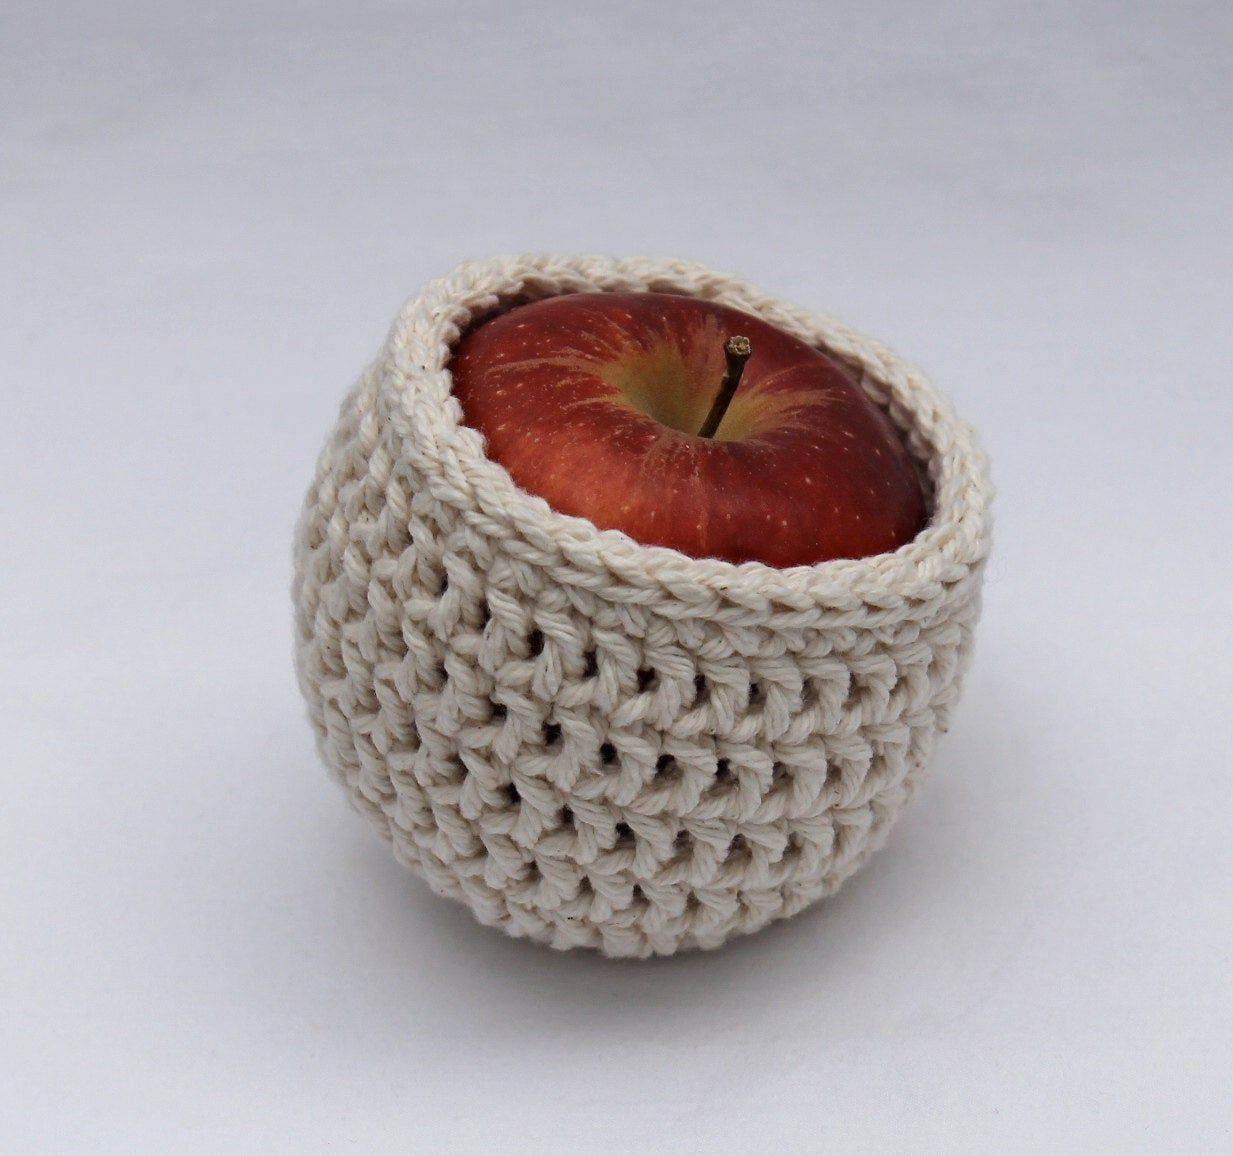 Cotton Crochet Basket  Organizing Tool  Fruit Cozy  Tea Caddy  Crochet Bowl  Cotton Bowl  Bowlstorage solutions storage  organize Cotton Crochet Basket  Organizing Tool...